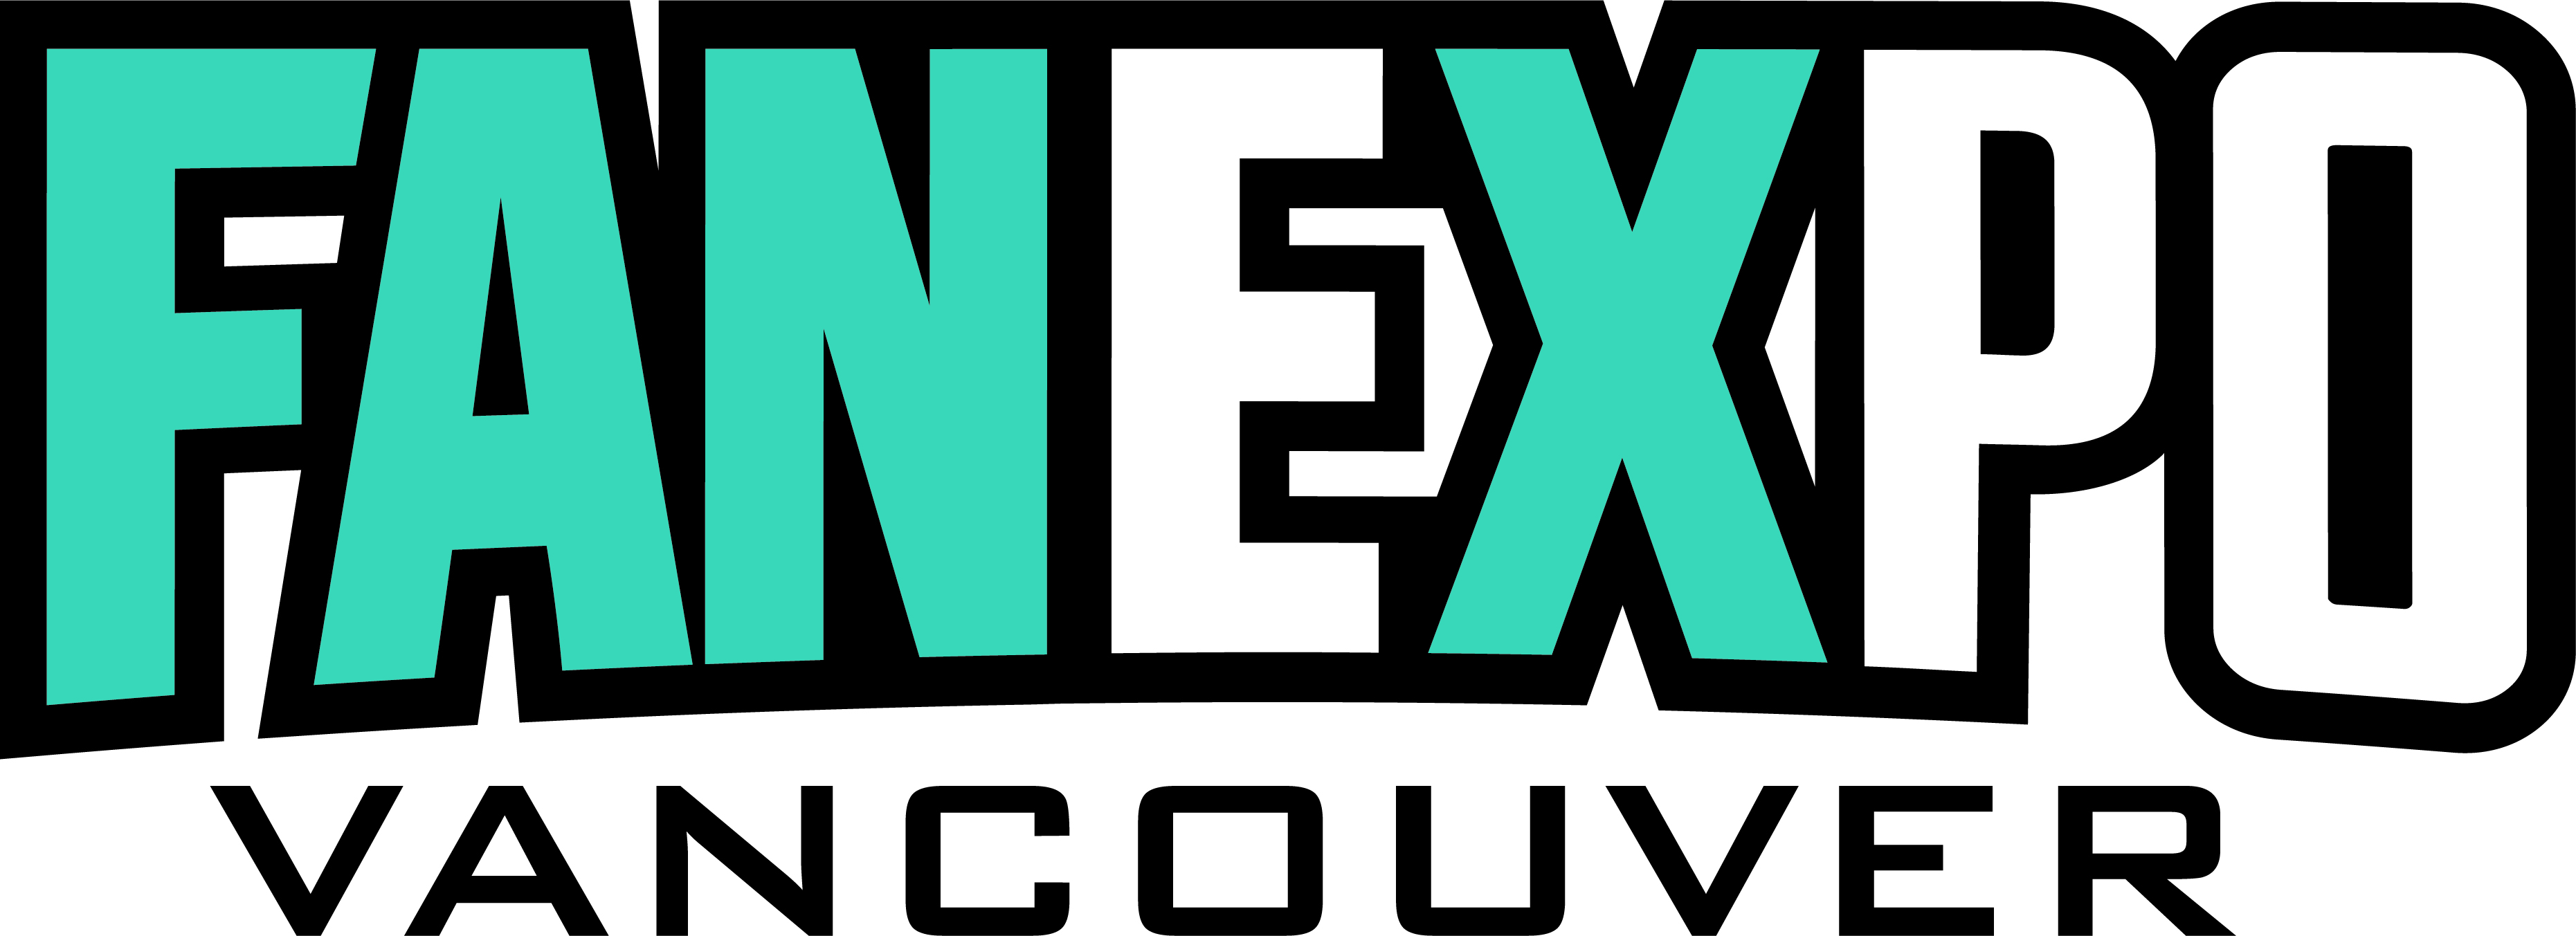 FAN EXPO VANCOUVER Help Center home page